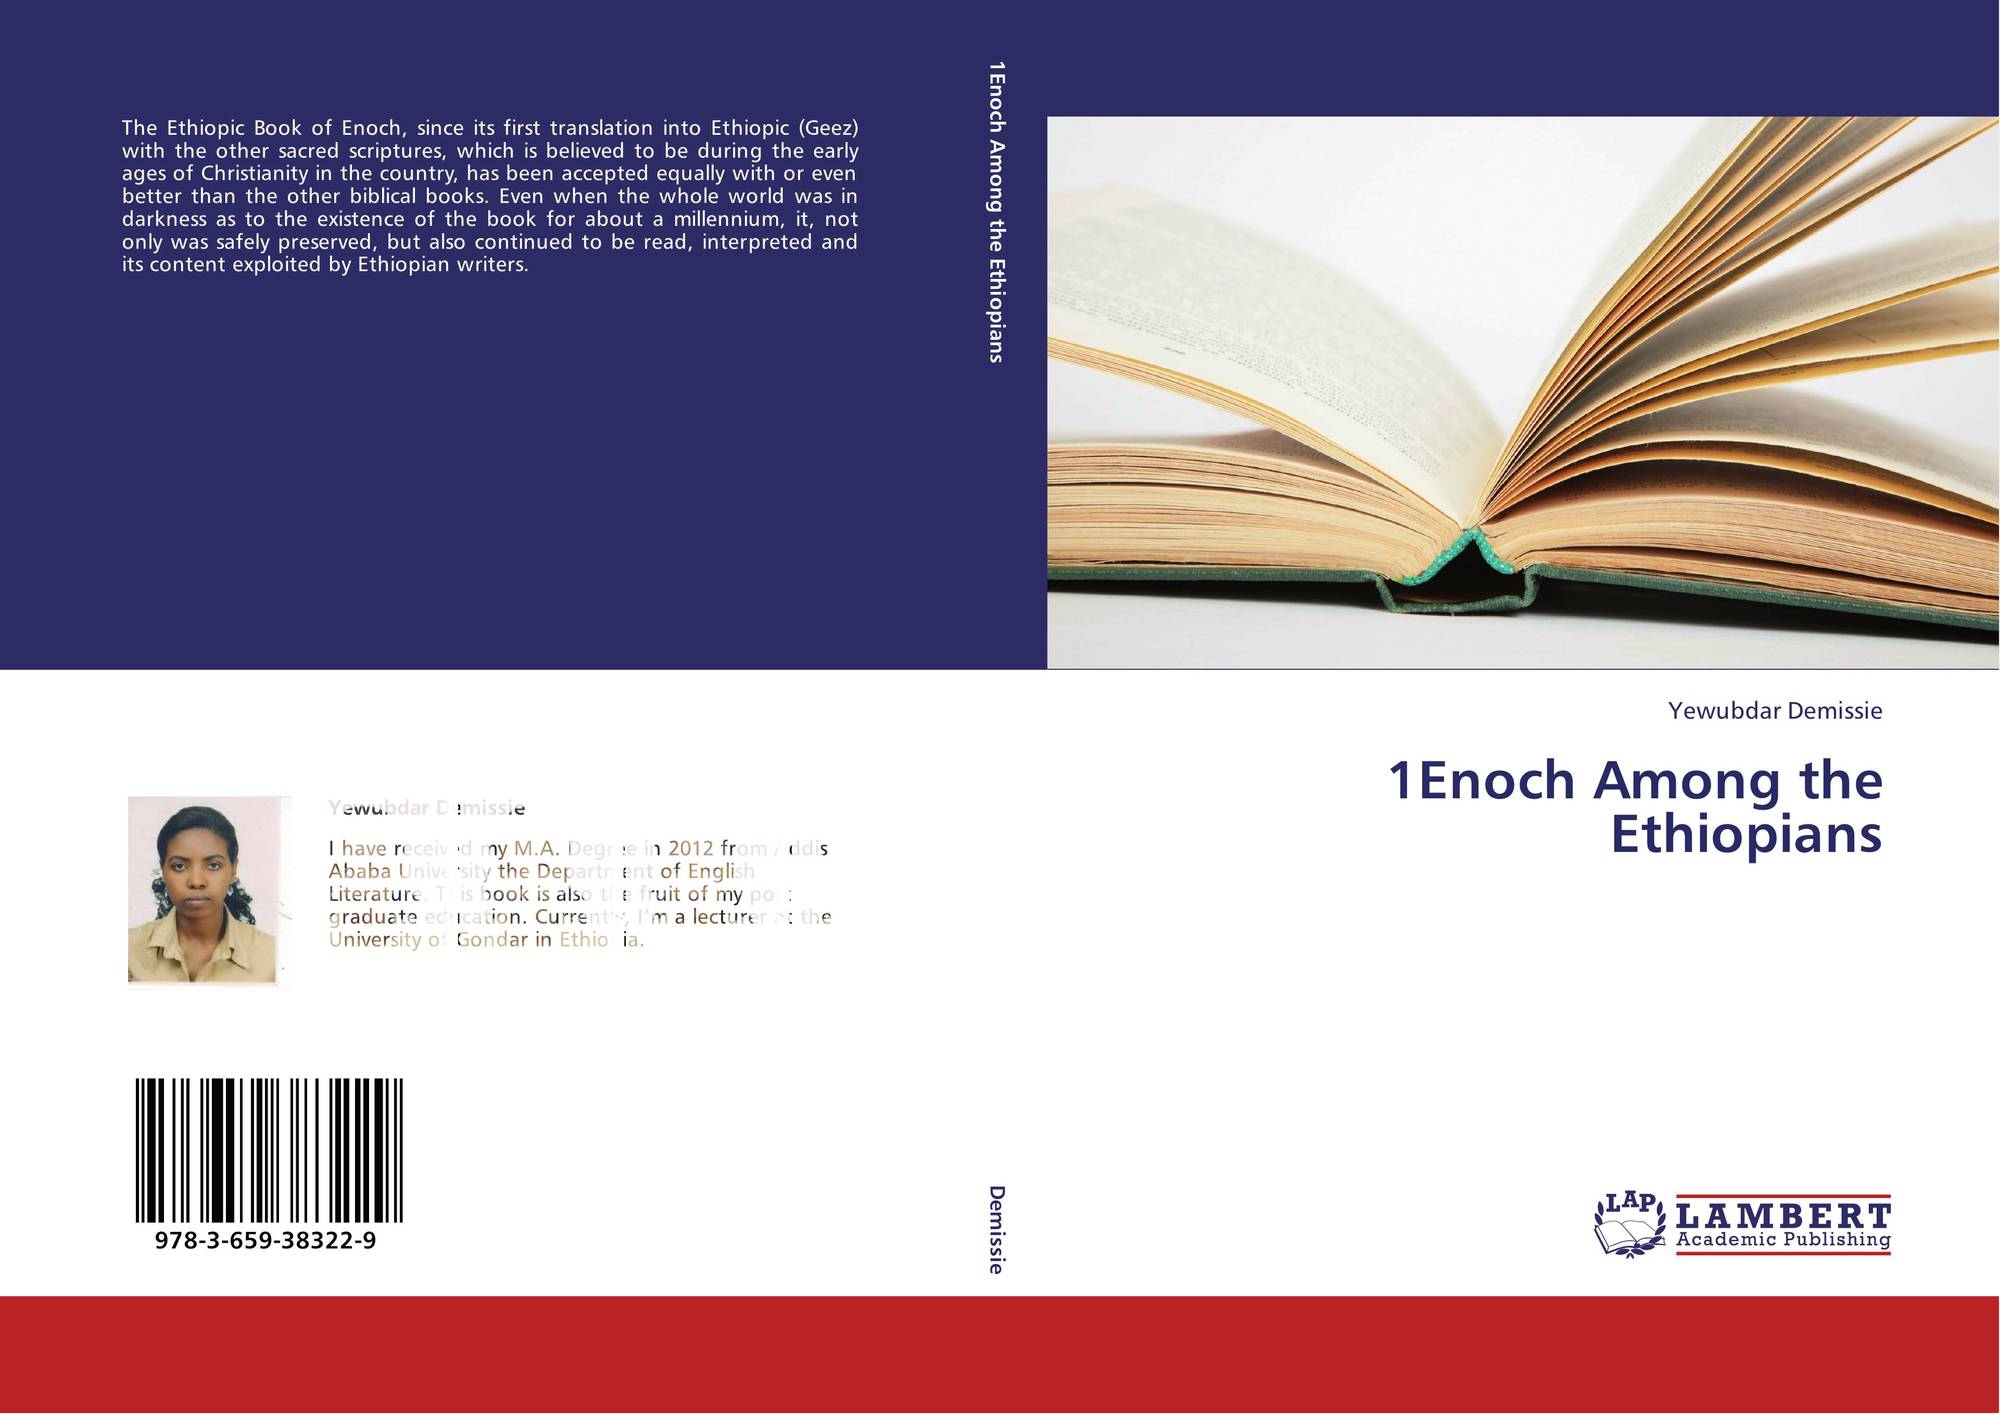 Category English linguistics / literature science | Page 2 |